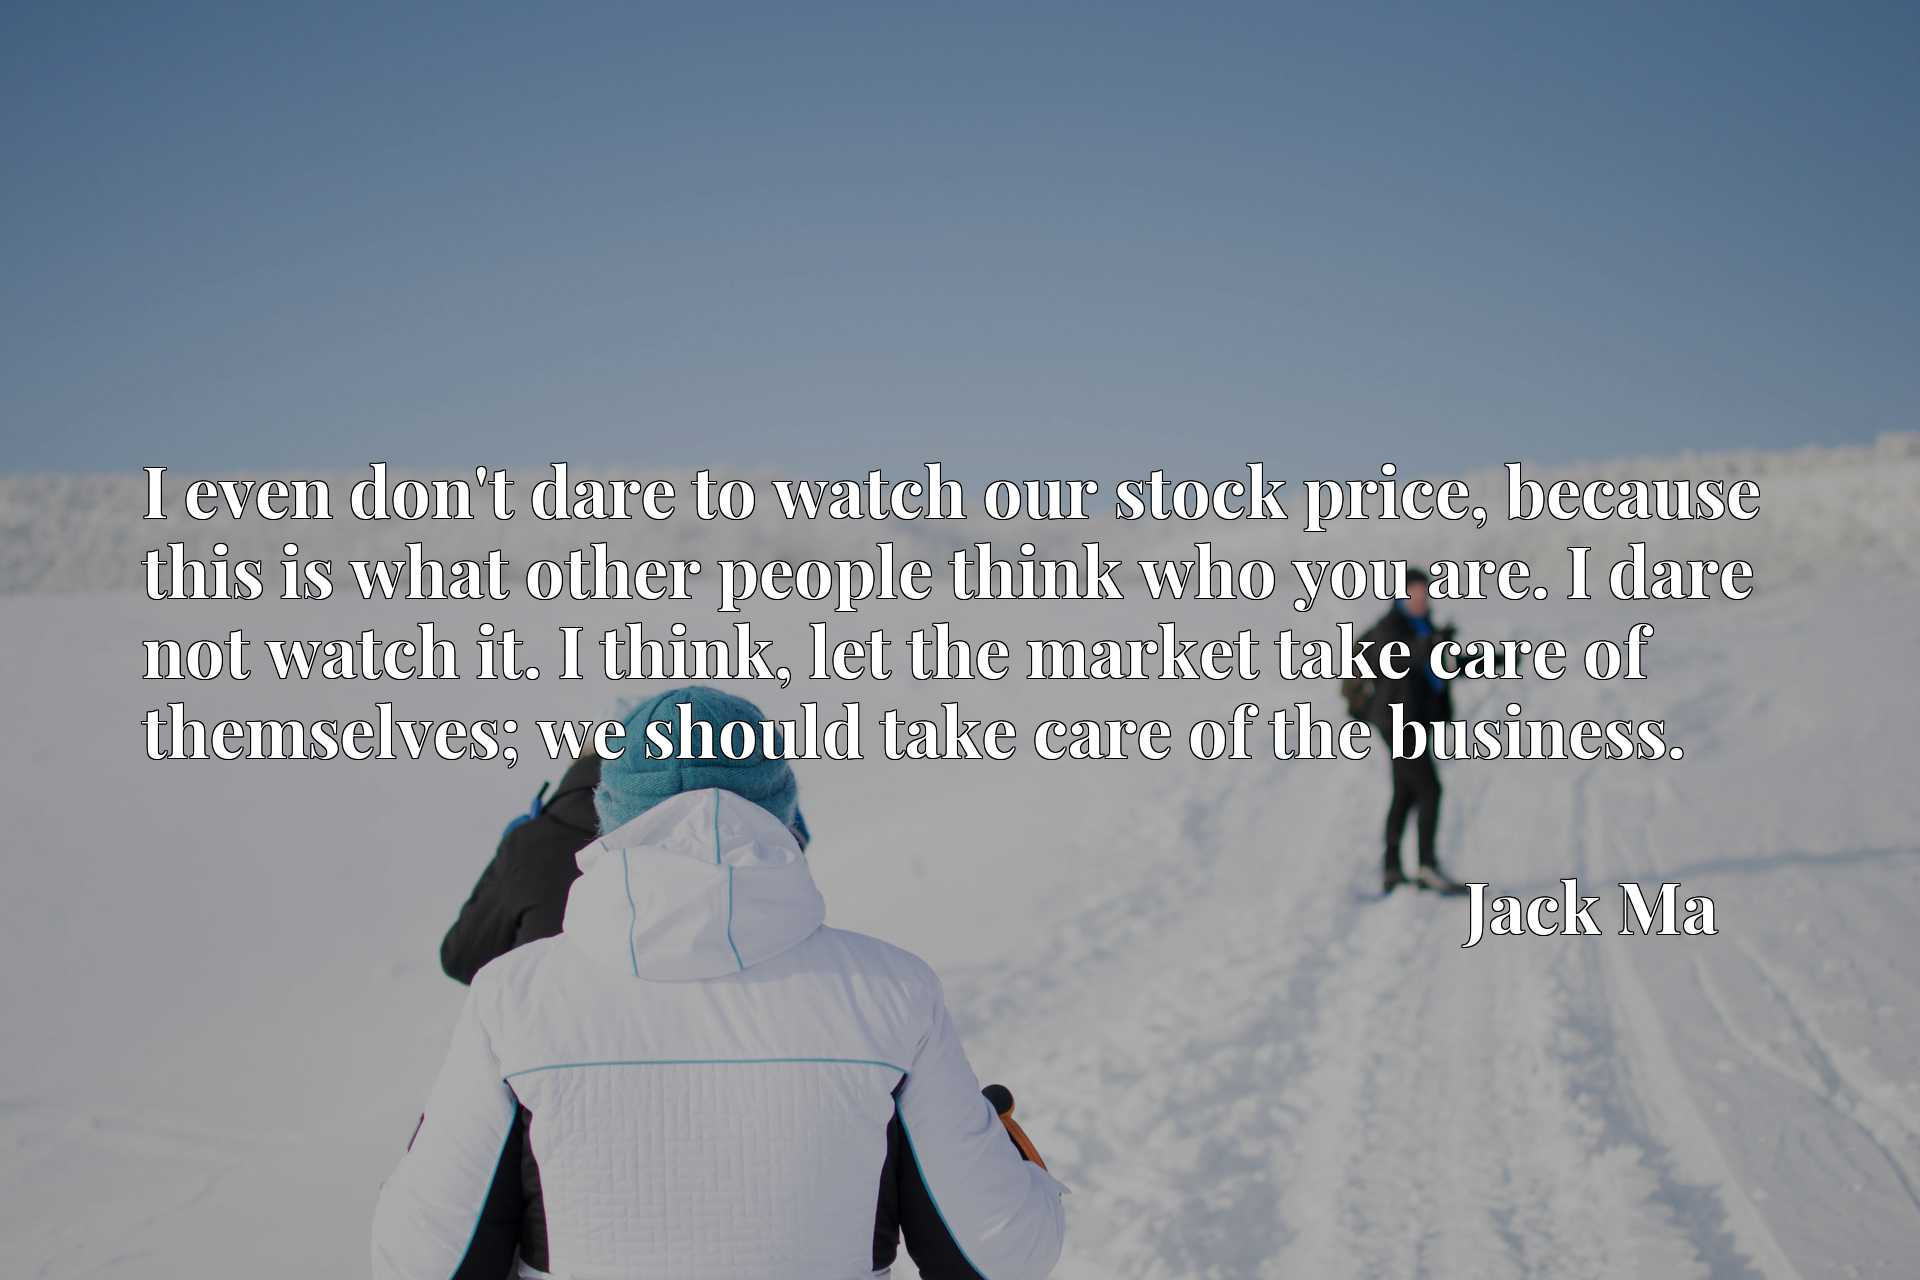 I even don't dare to watch our stock price, because this is what other people think who you are. I dare not watch it. I think, let the market take care of themselves; we should take care of the business.